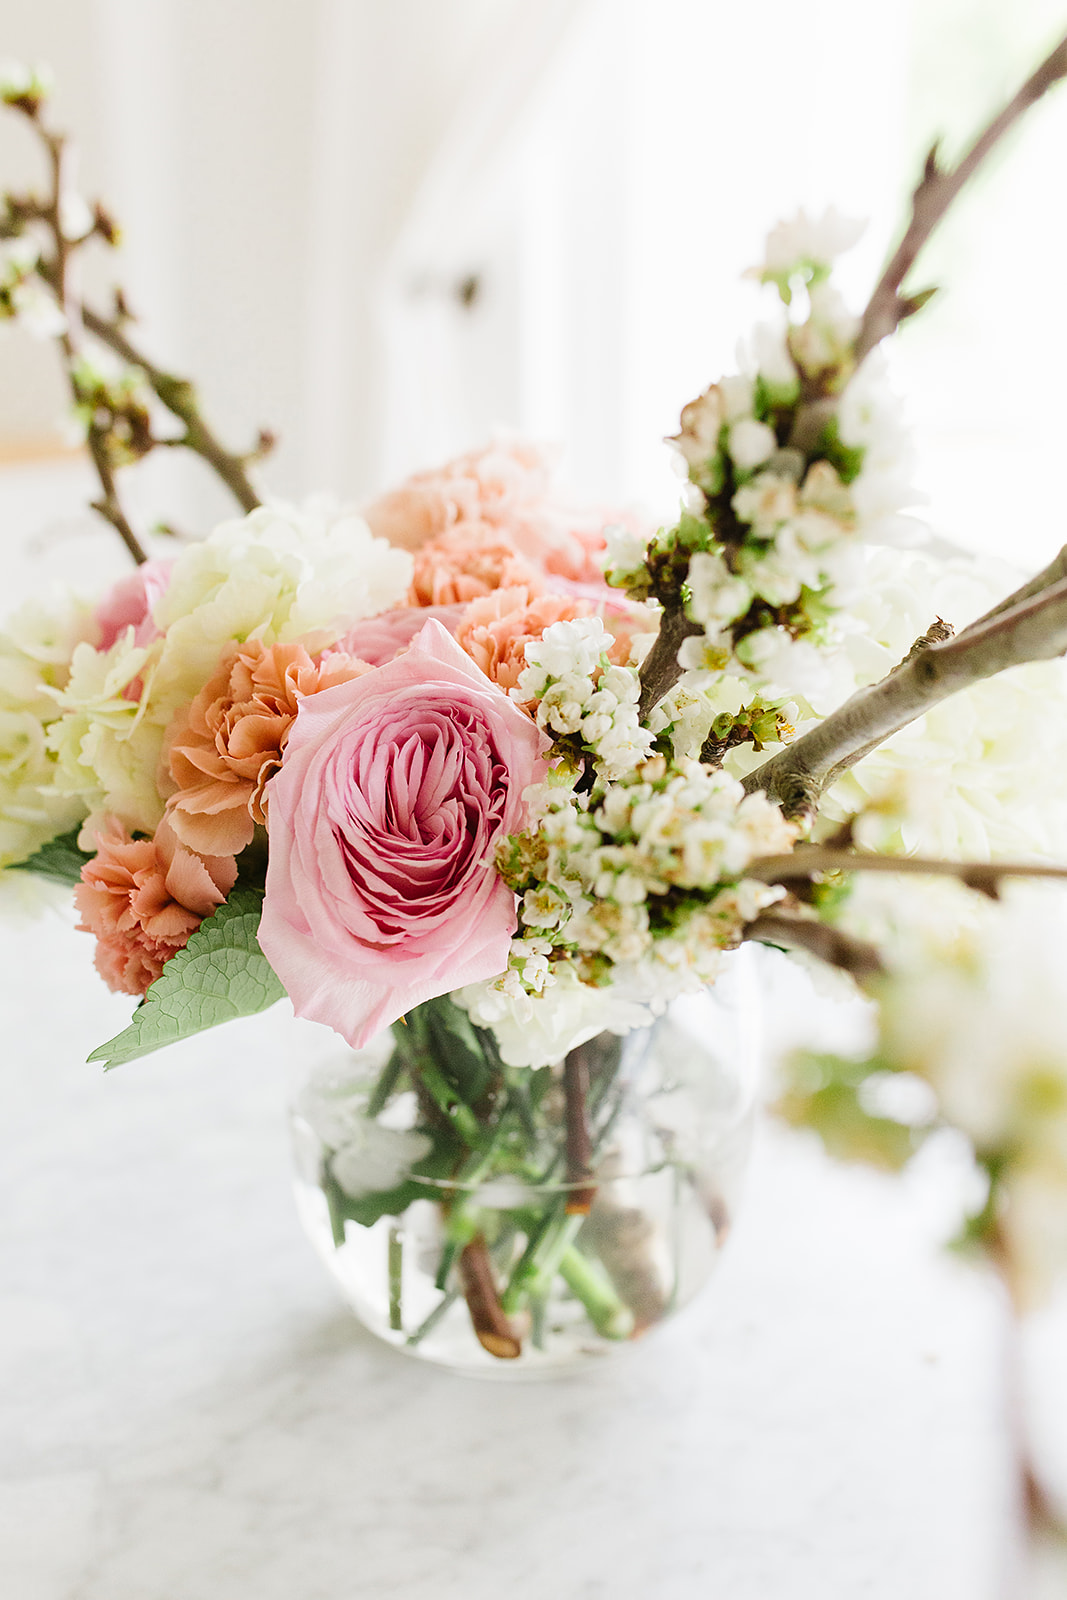 Florals used in these photos: cherry blossoms, hydrangea, carnations, garden roses